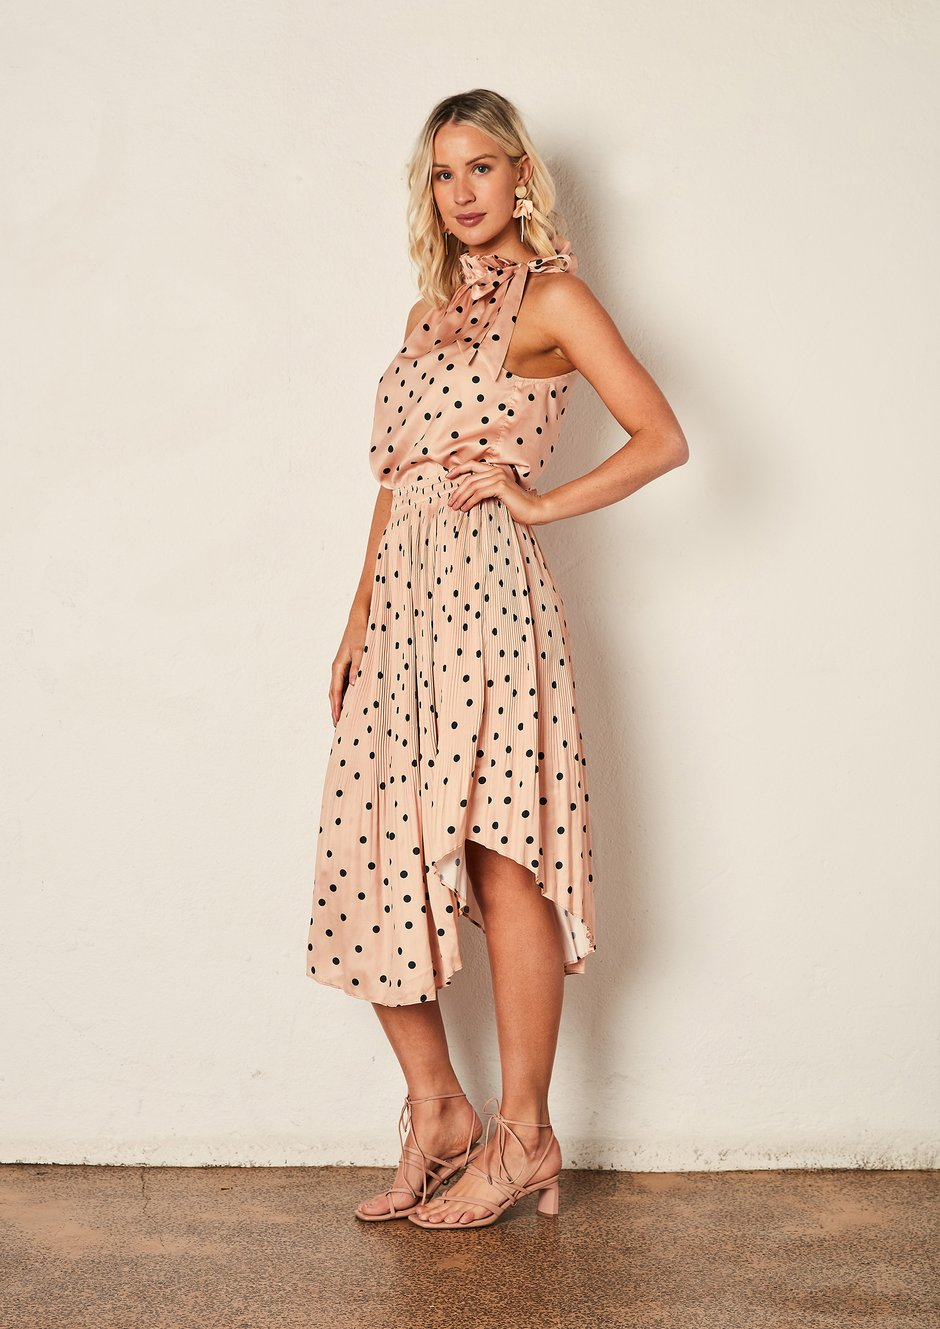 We Are The Others - Pleated Skirt Peach Polka